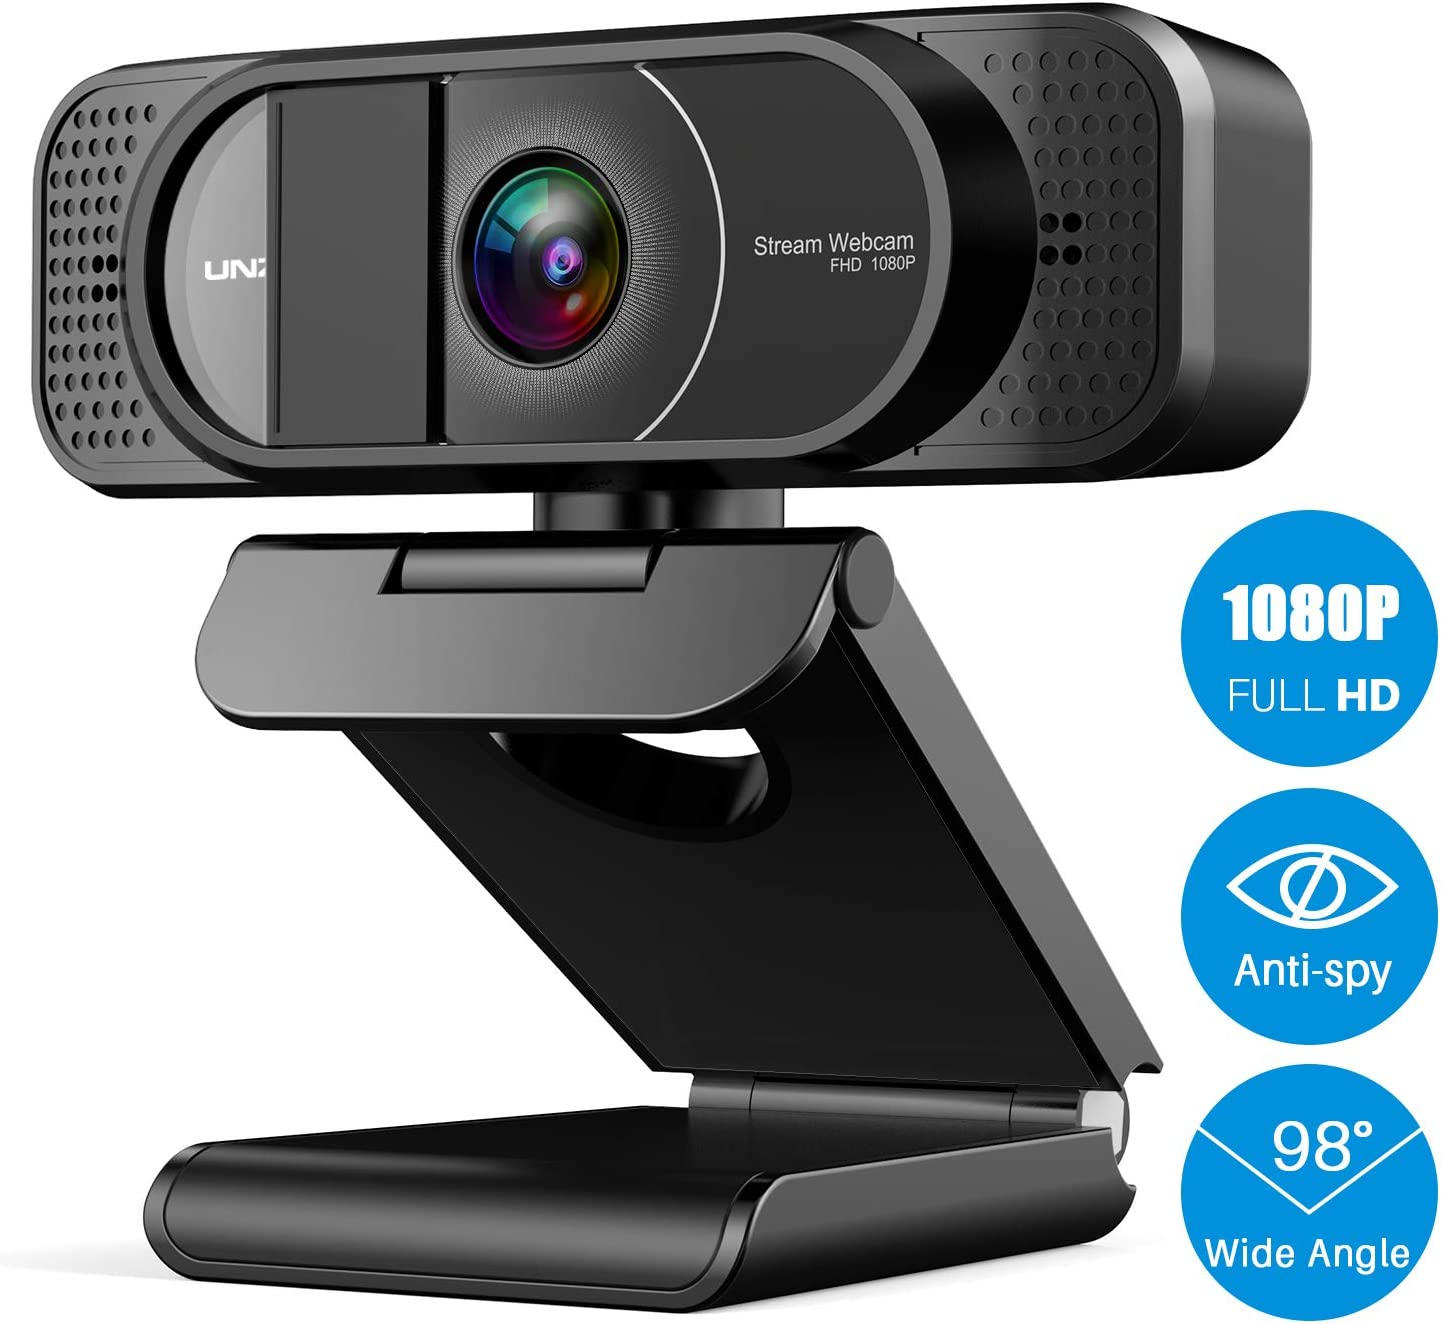 Webcam with Microphone, Full HD Webcam 1080P with Privacy Cover, Desktop or Laptop USB Webcam with 98-Degree Wide Angle for Video Calling & Recording, Conferencing